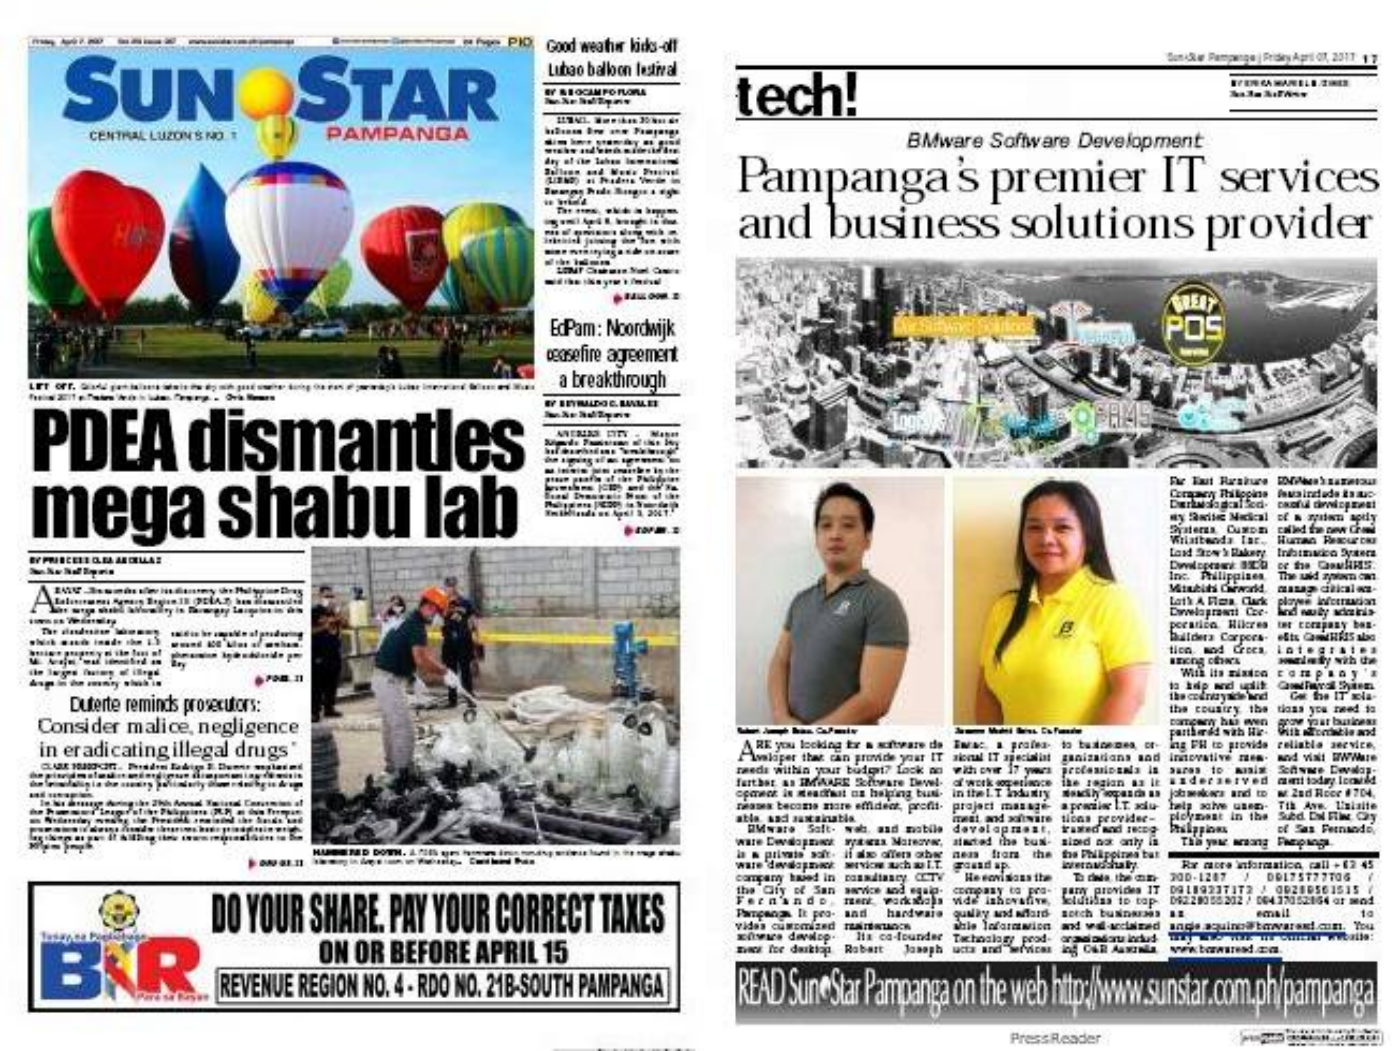 BMWare Featured in Sun Star Pampanga